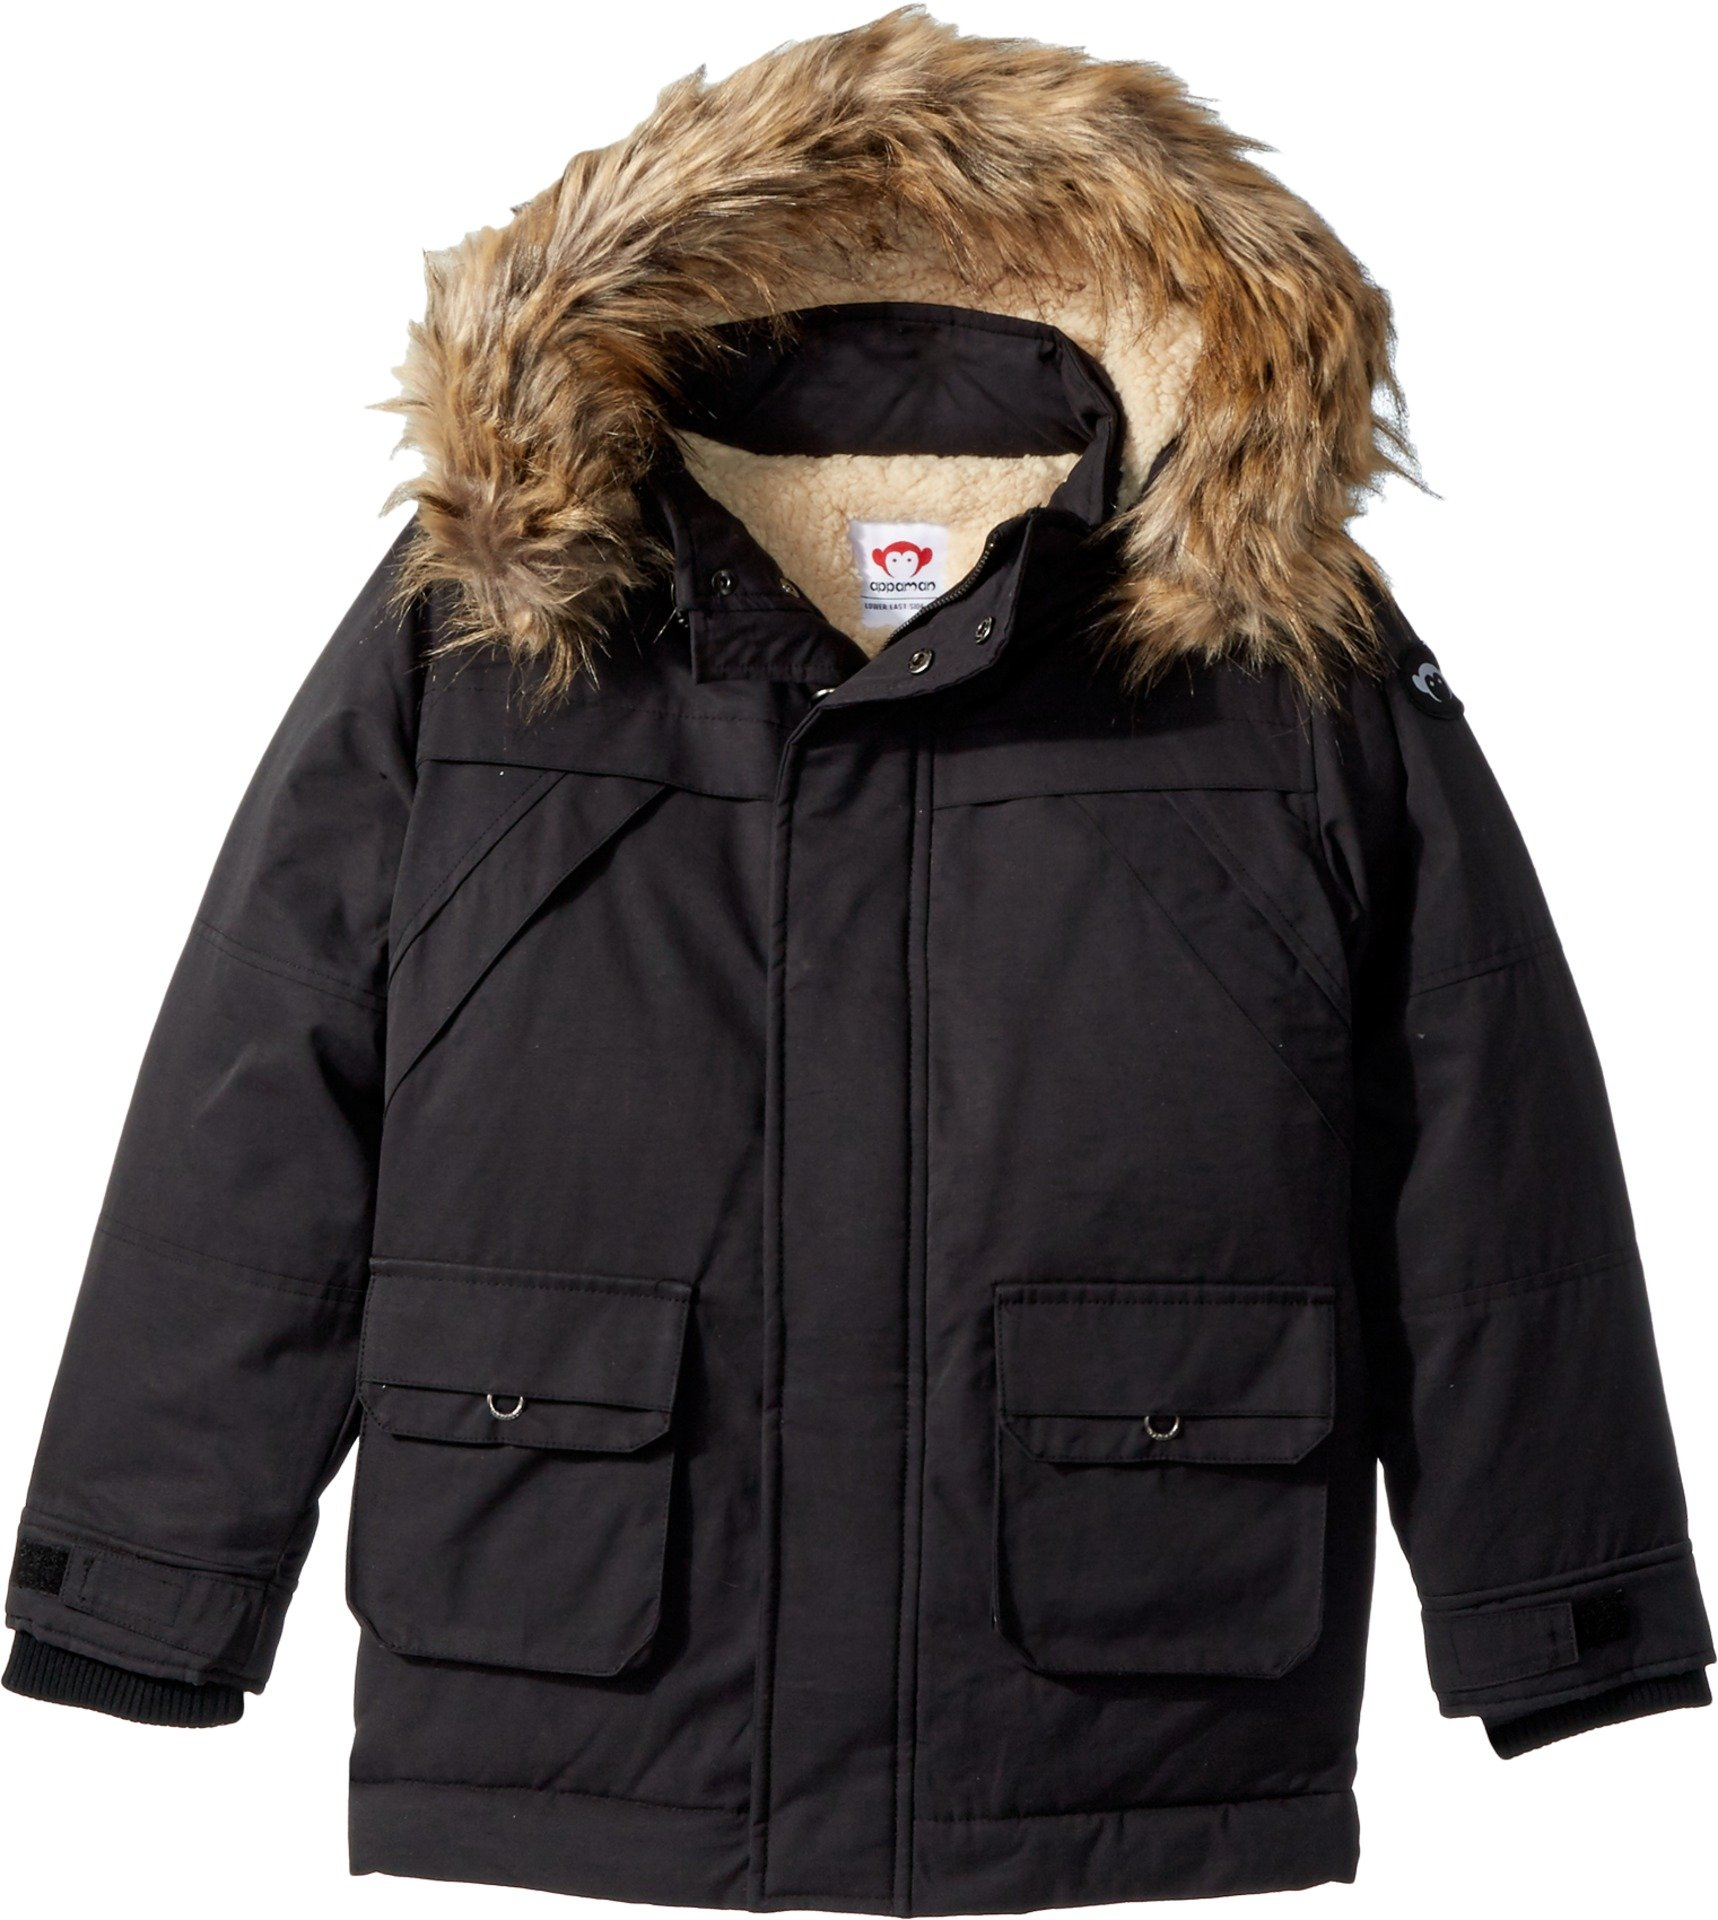 Appaman Kids  Baby Boy's Denali Down Coat (Toddler/Little Kids/Big Kids) Black 14